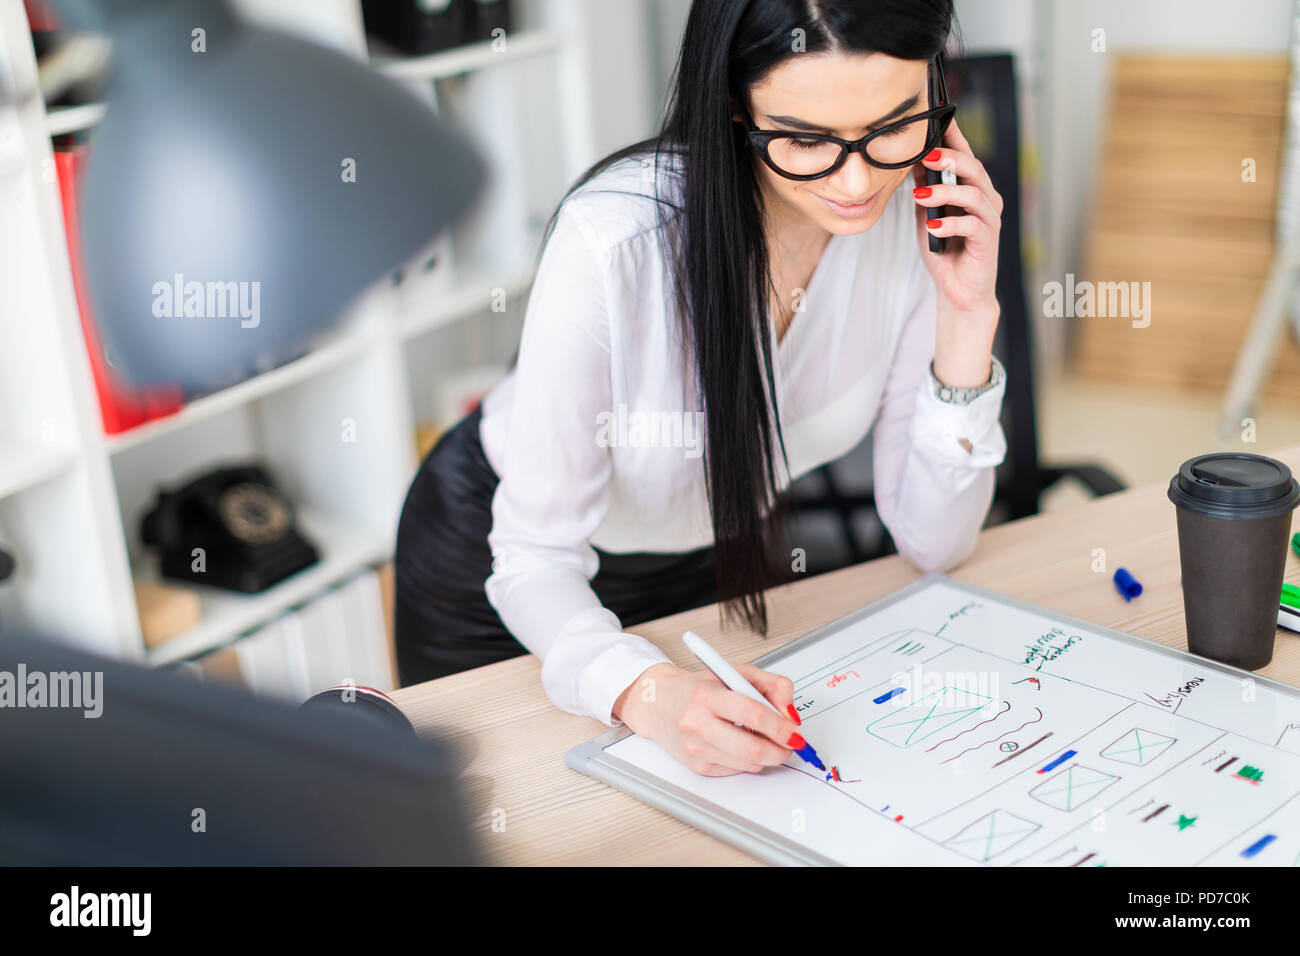 A young girl in glasses stands near a table, talks on the phone and draws a marker on a magnetic board. - Stock Image